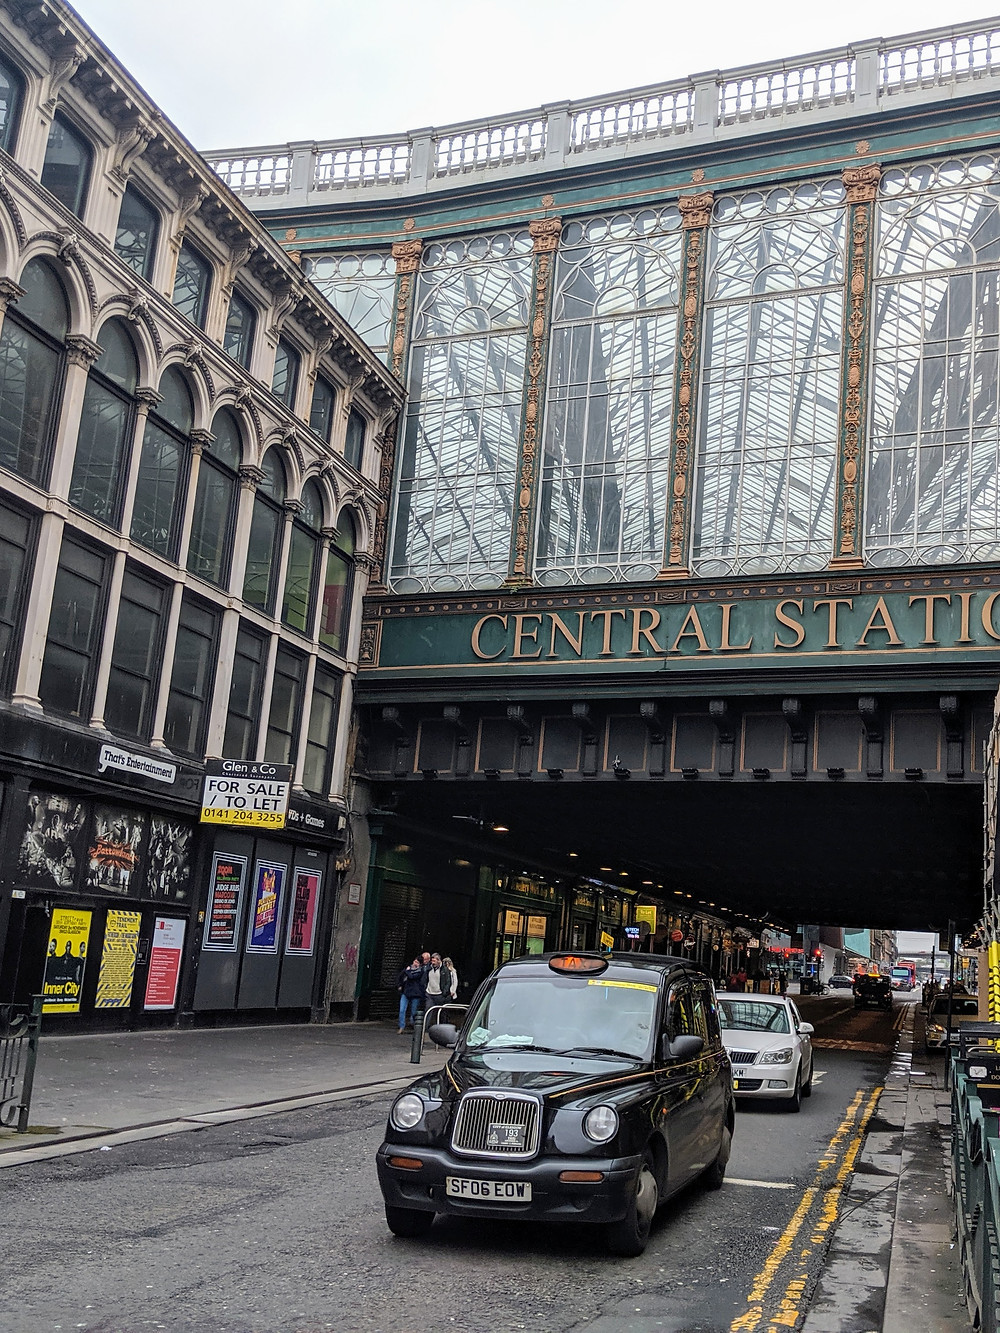 Central Station in Glasgow with taxis parked out front